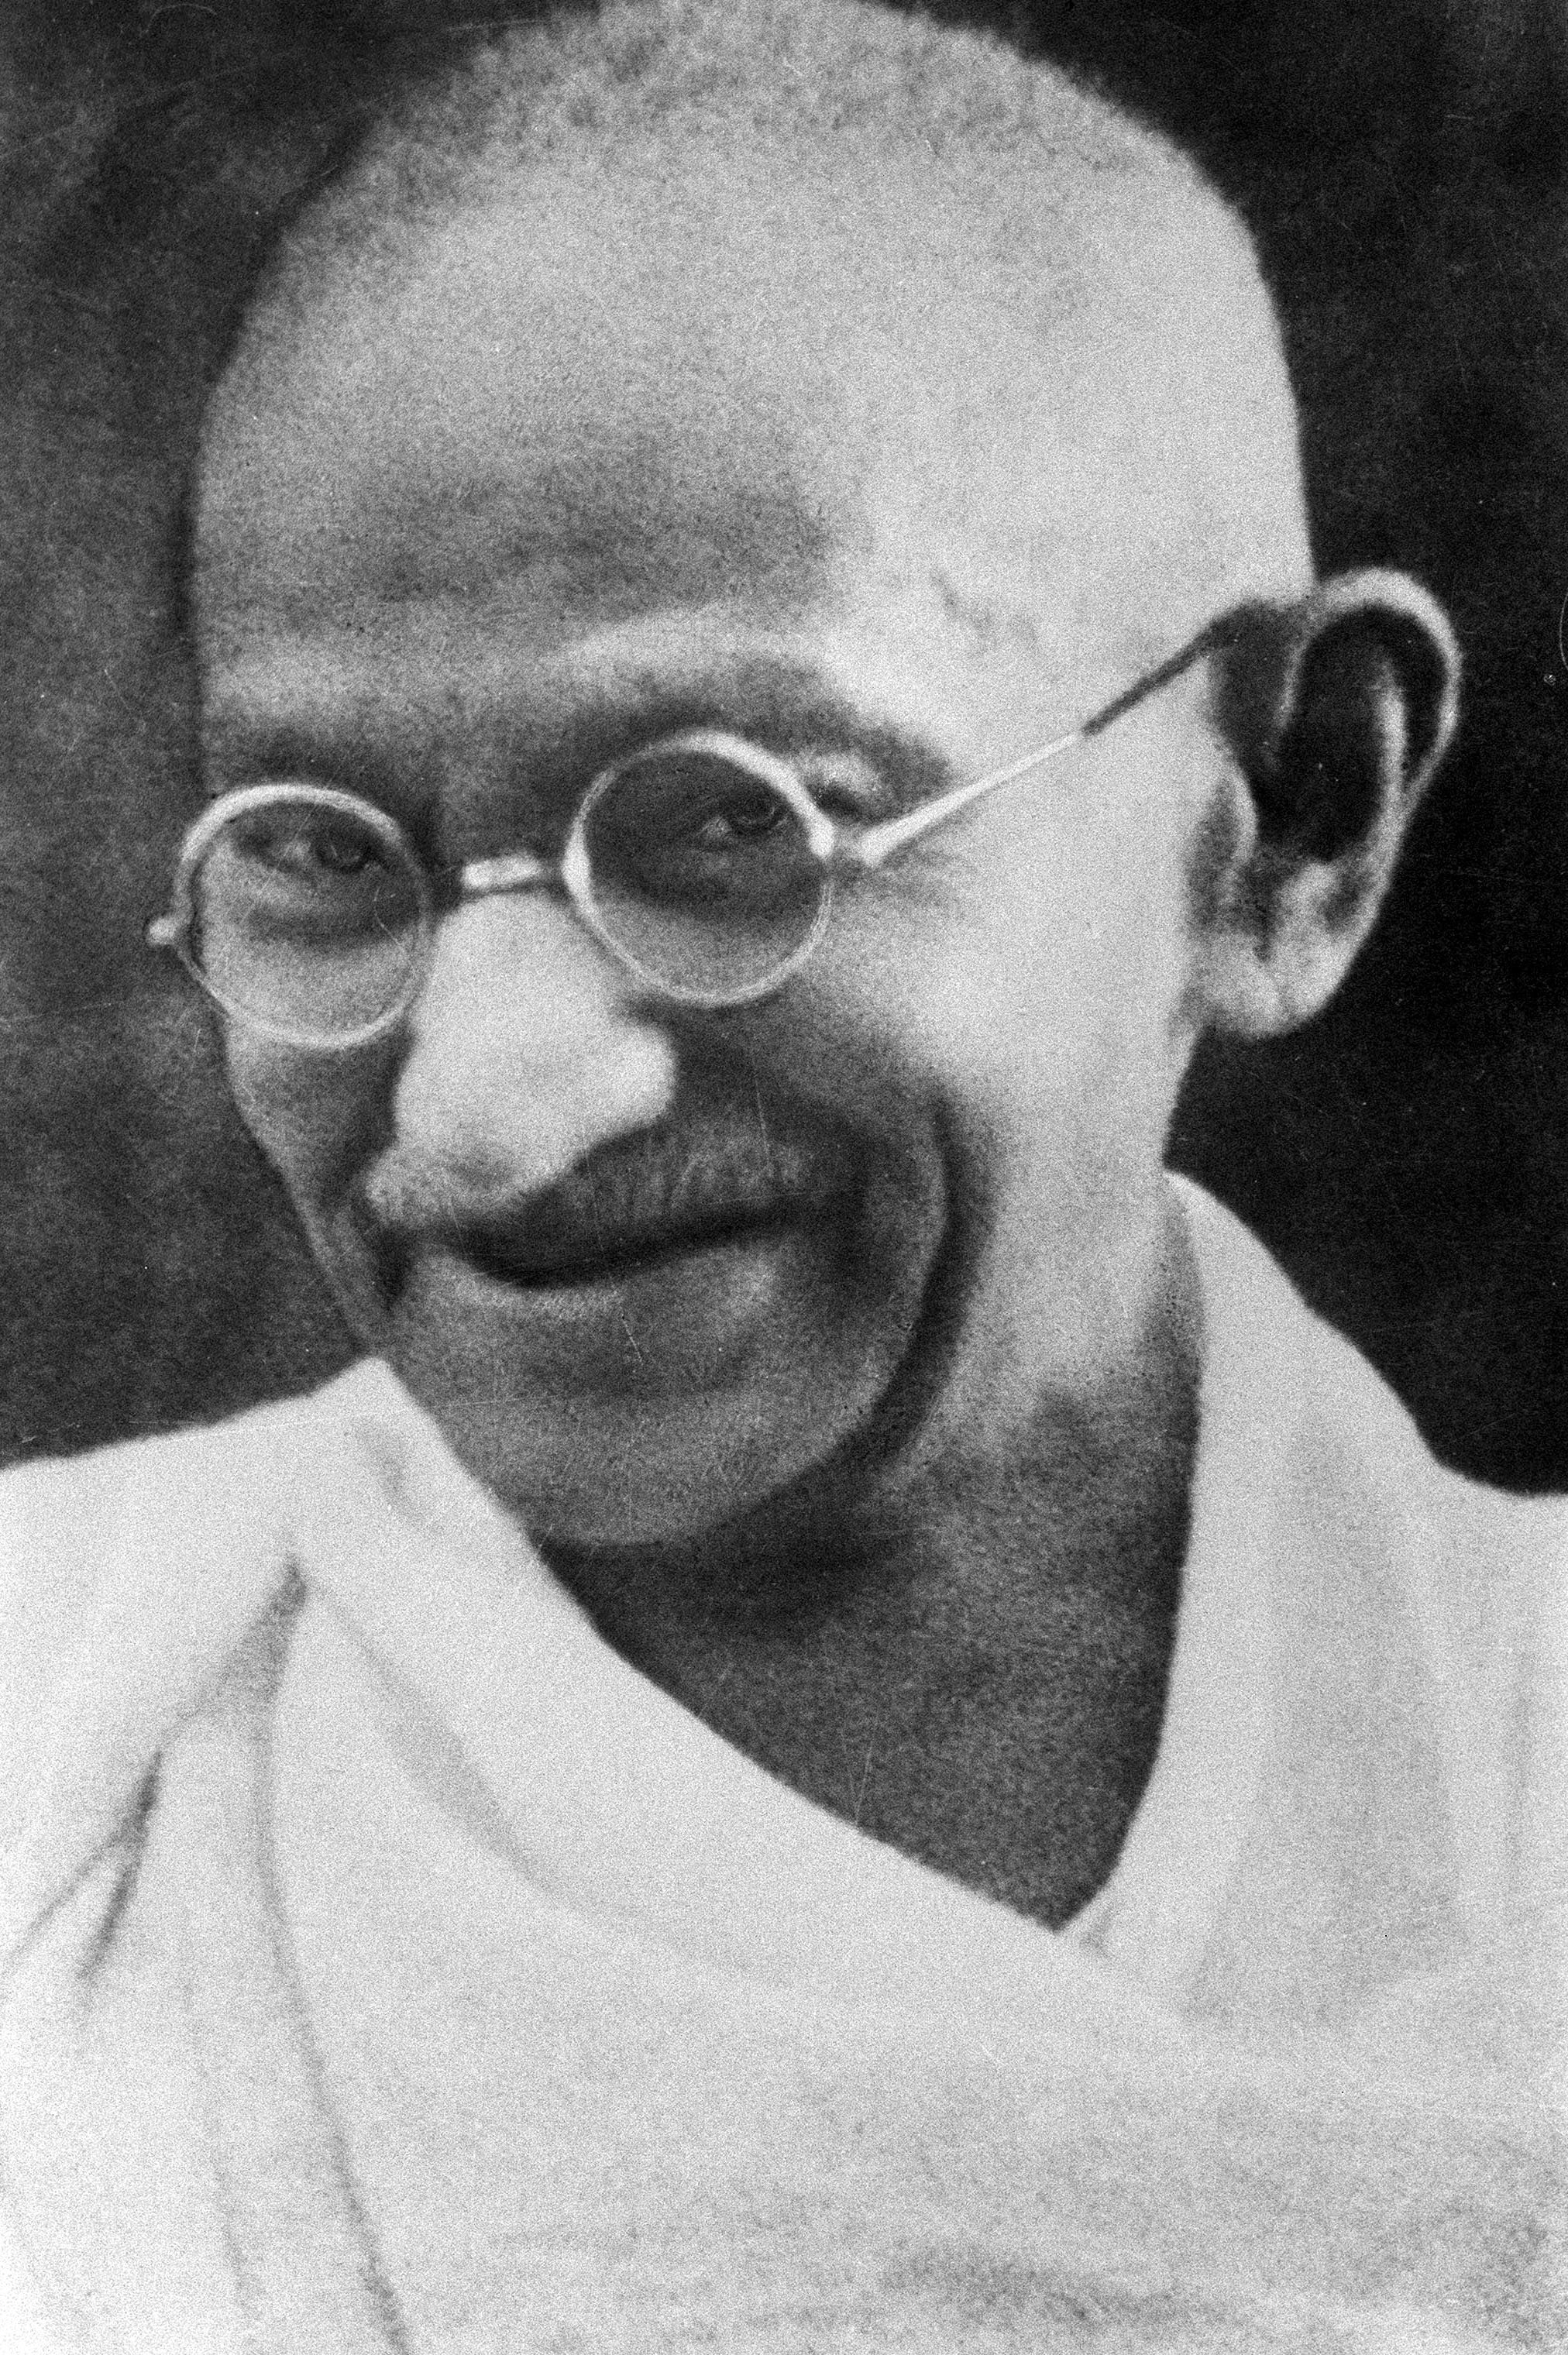 http://upload.wikimedia.org/wikipedia/commons/d/d1/Portrait_Gandhi.jpg